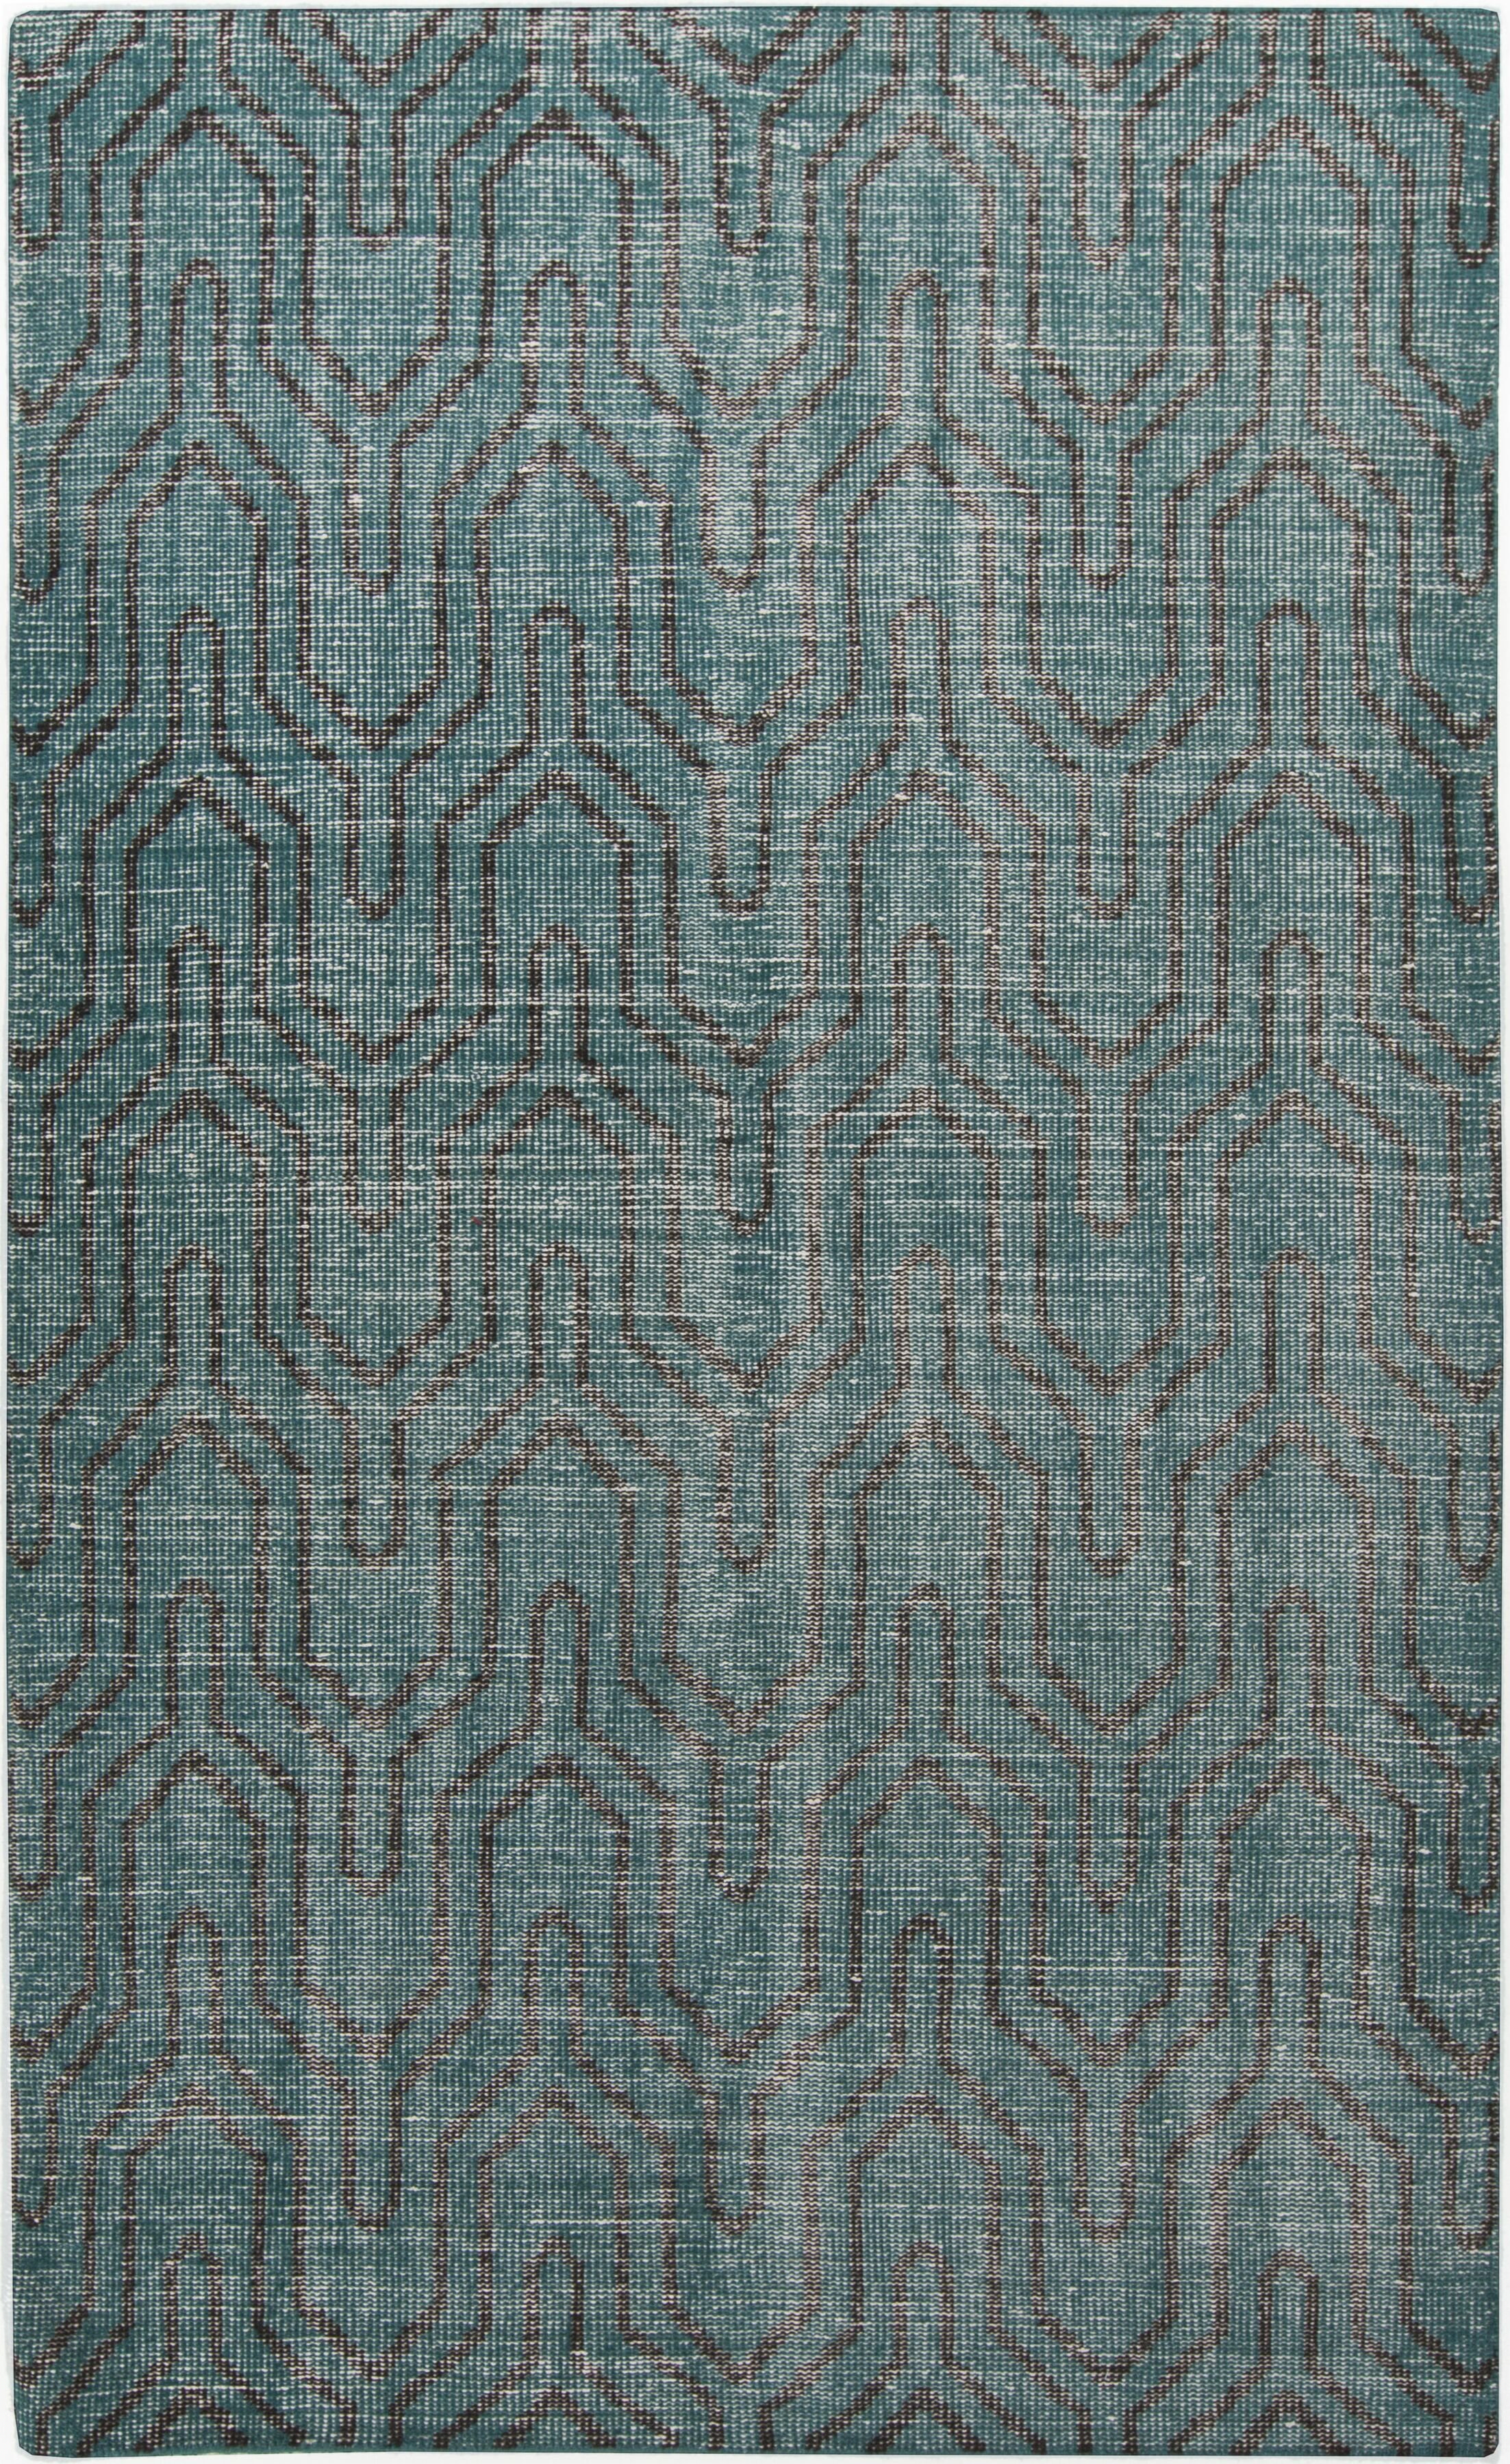 Gartman Geometric Teal Area Rug Rug Size: Rectangle 5'6